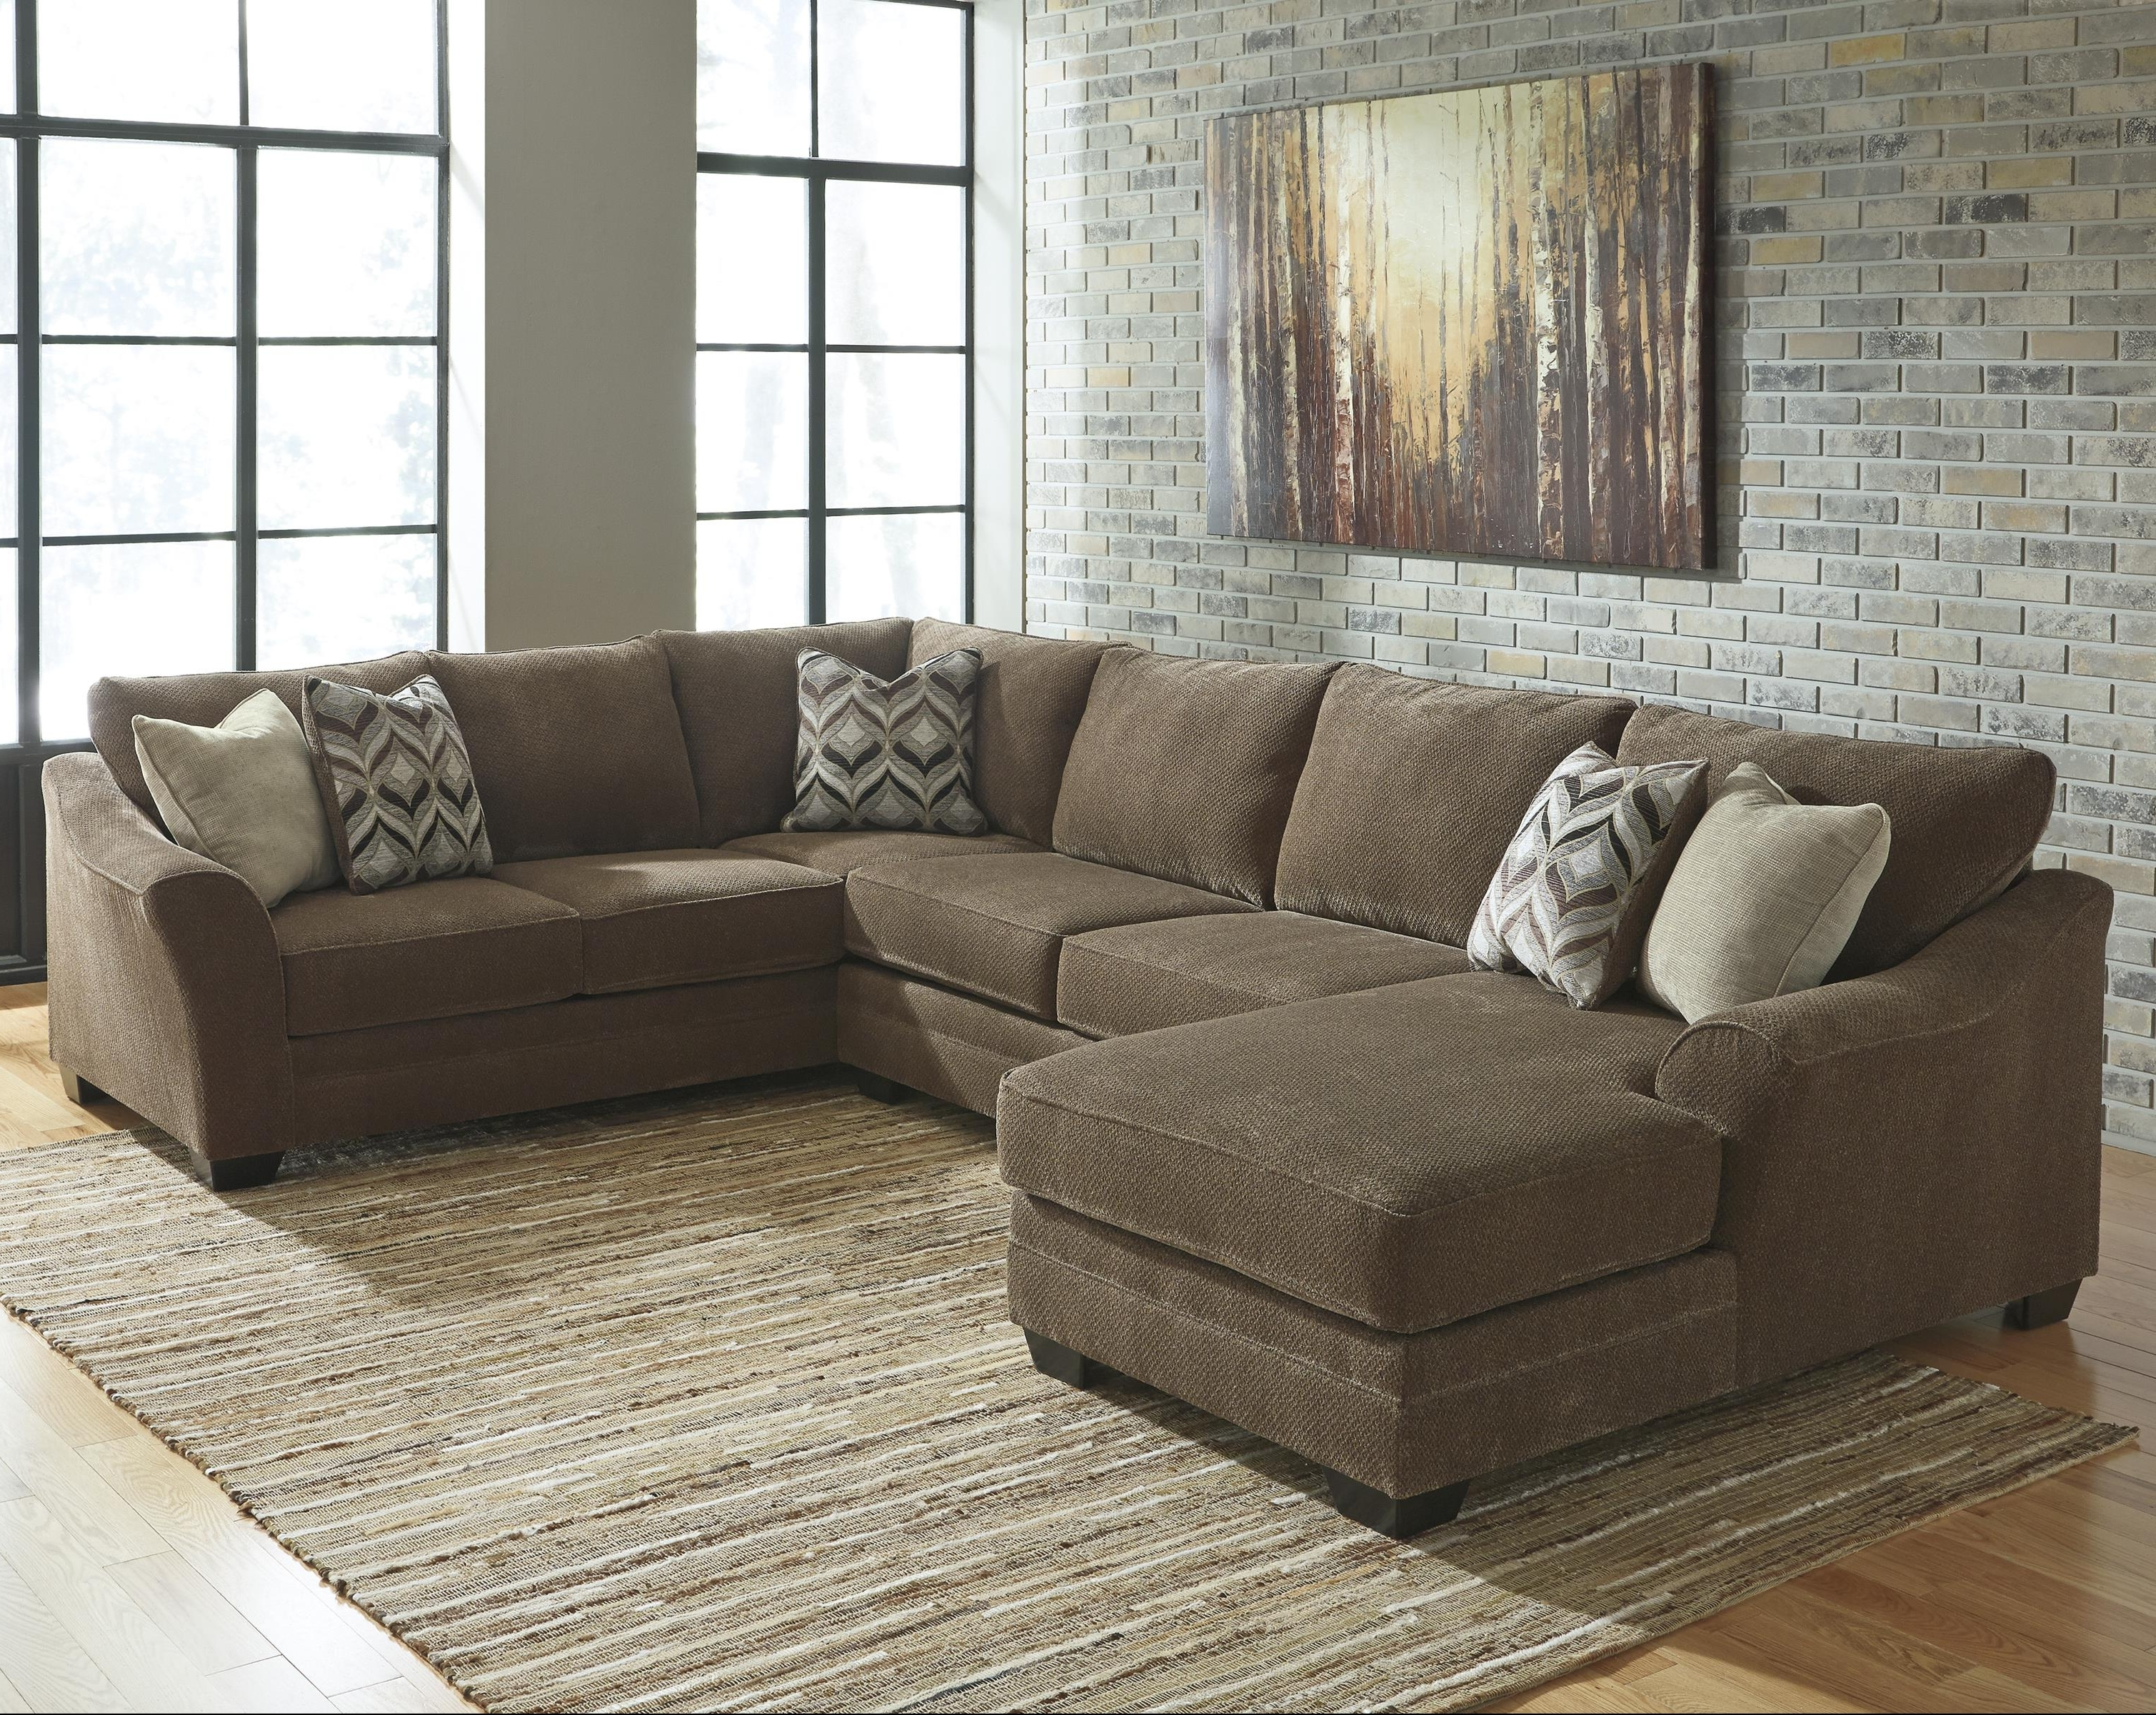 Preferred Benchcraft Justyna Contemporary 3-Piece Sectional With Left Chaise with 3 Piece Sectional Sofas With Chaise